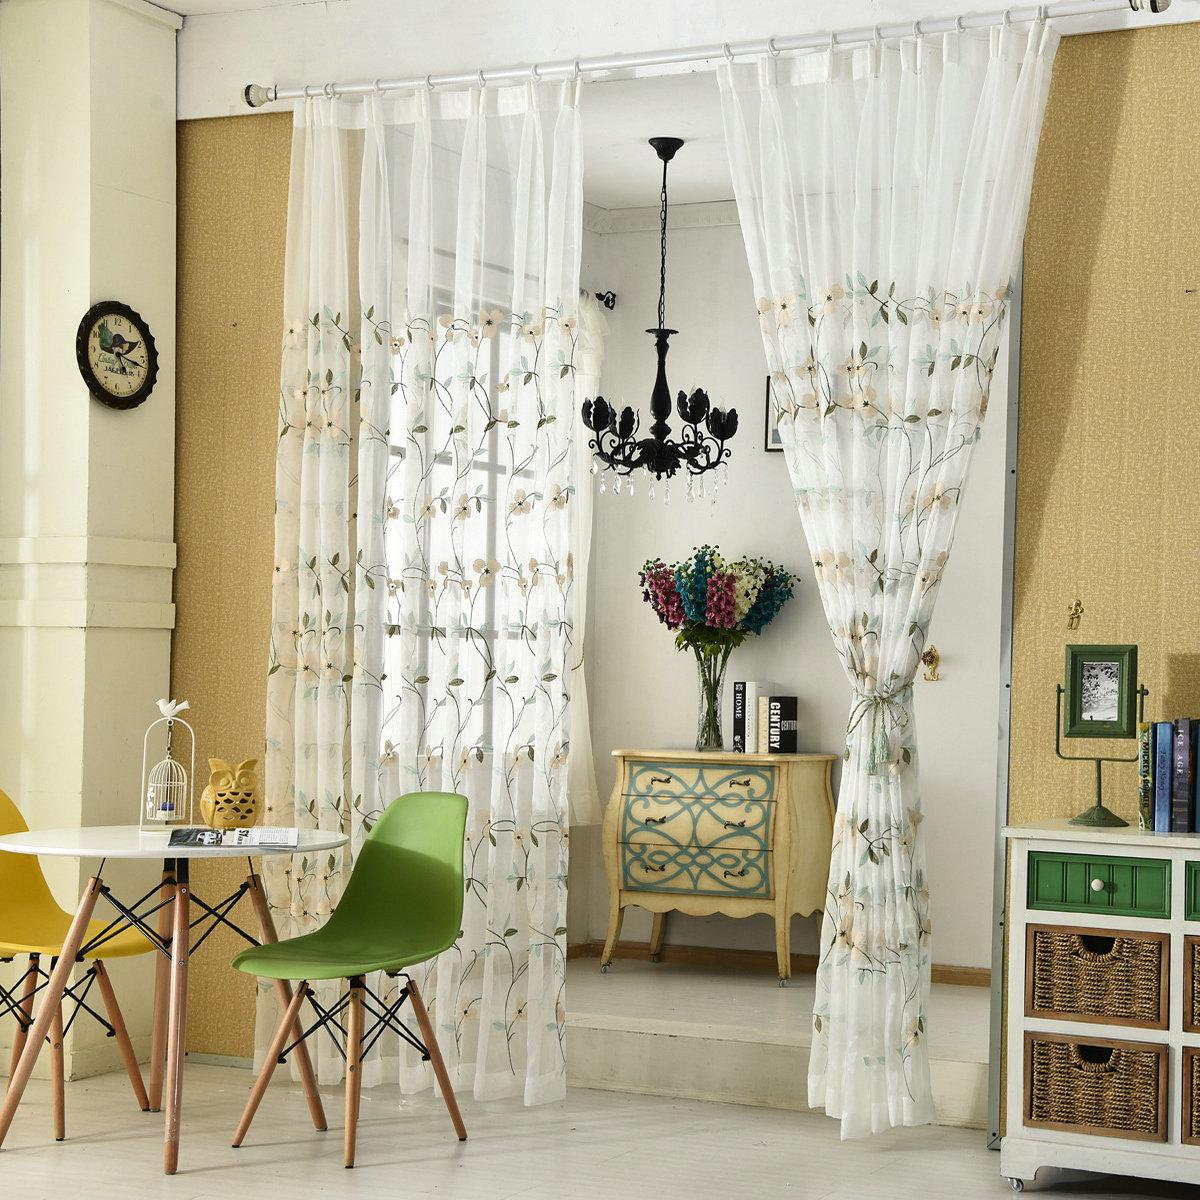 Modern Curtains For Bedroom Pastoral Tulle Curtains Embroidered Floral White Tulle Modern Curtain For Living Room Bedroom Curtains Fabric Drapes